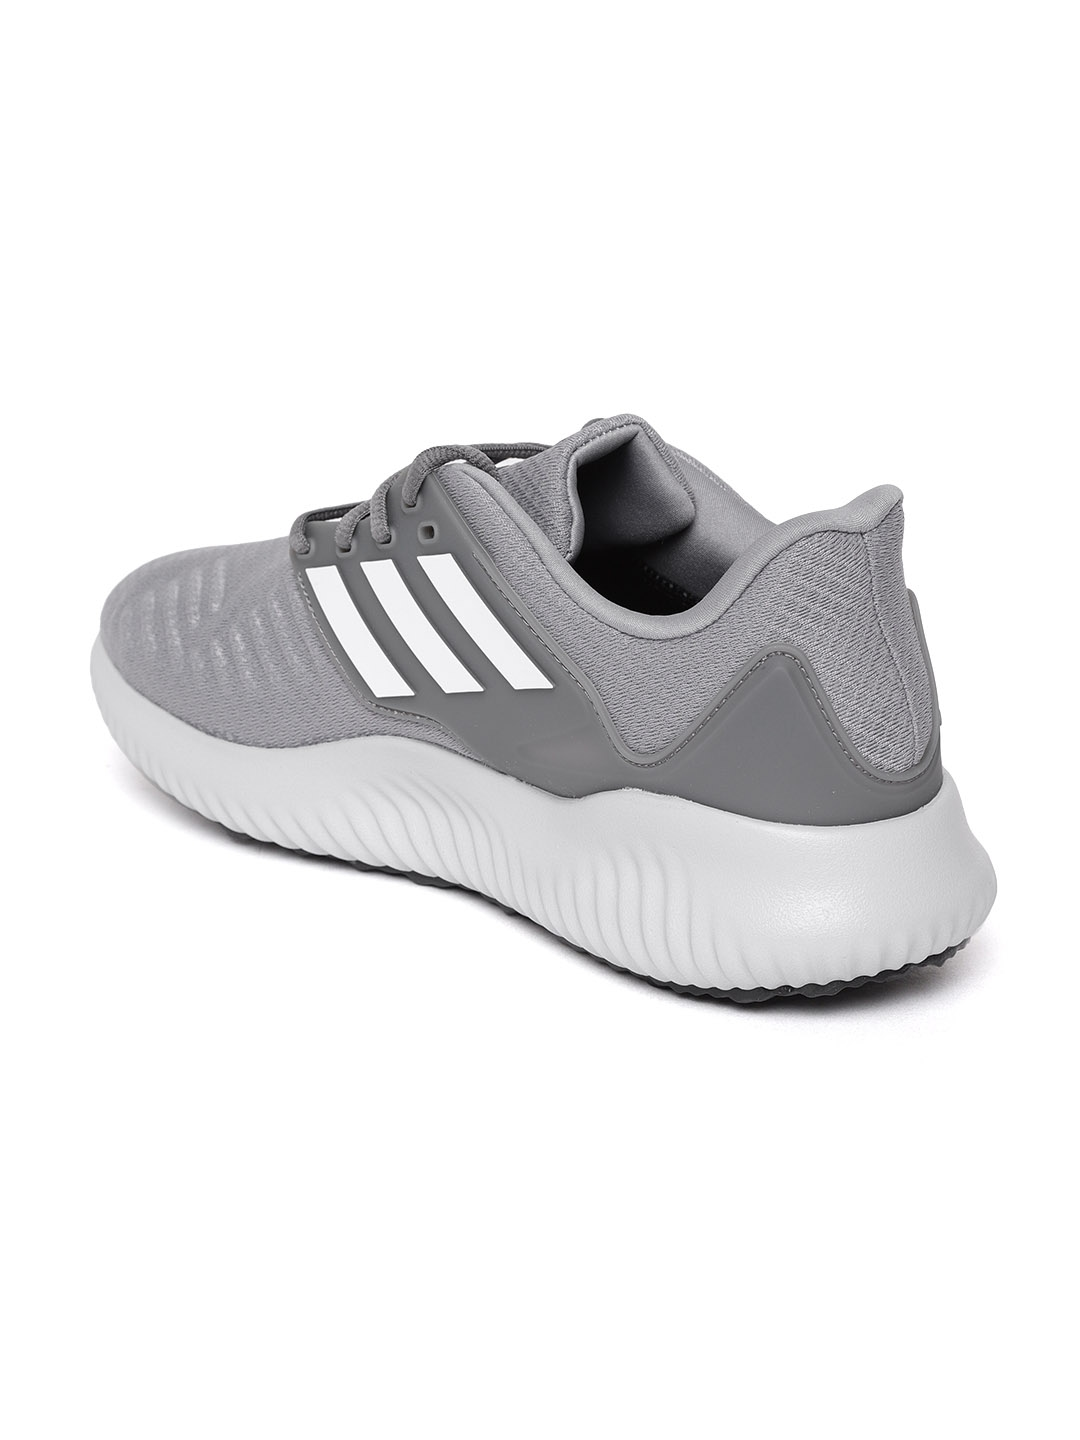 0aaab0ab7ec48 Buy ADIDAS Men Grey Alphabounce RC 2 Running Shoes - Sports Shoes ...